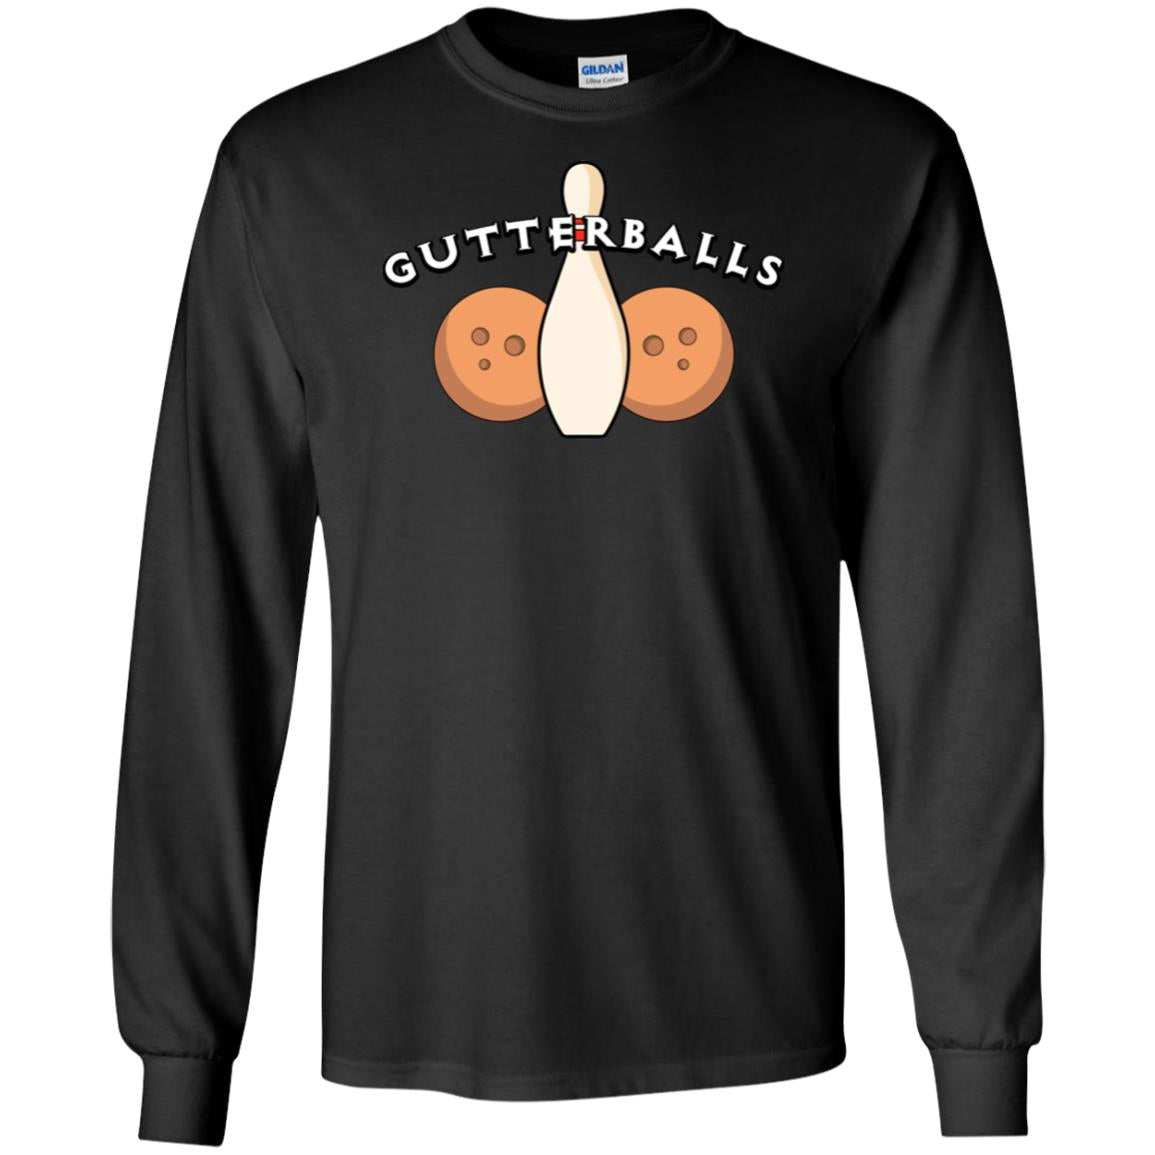 Gutterballs Long Sleeve